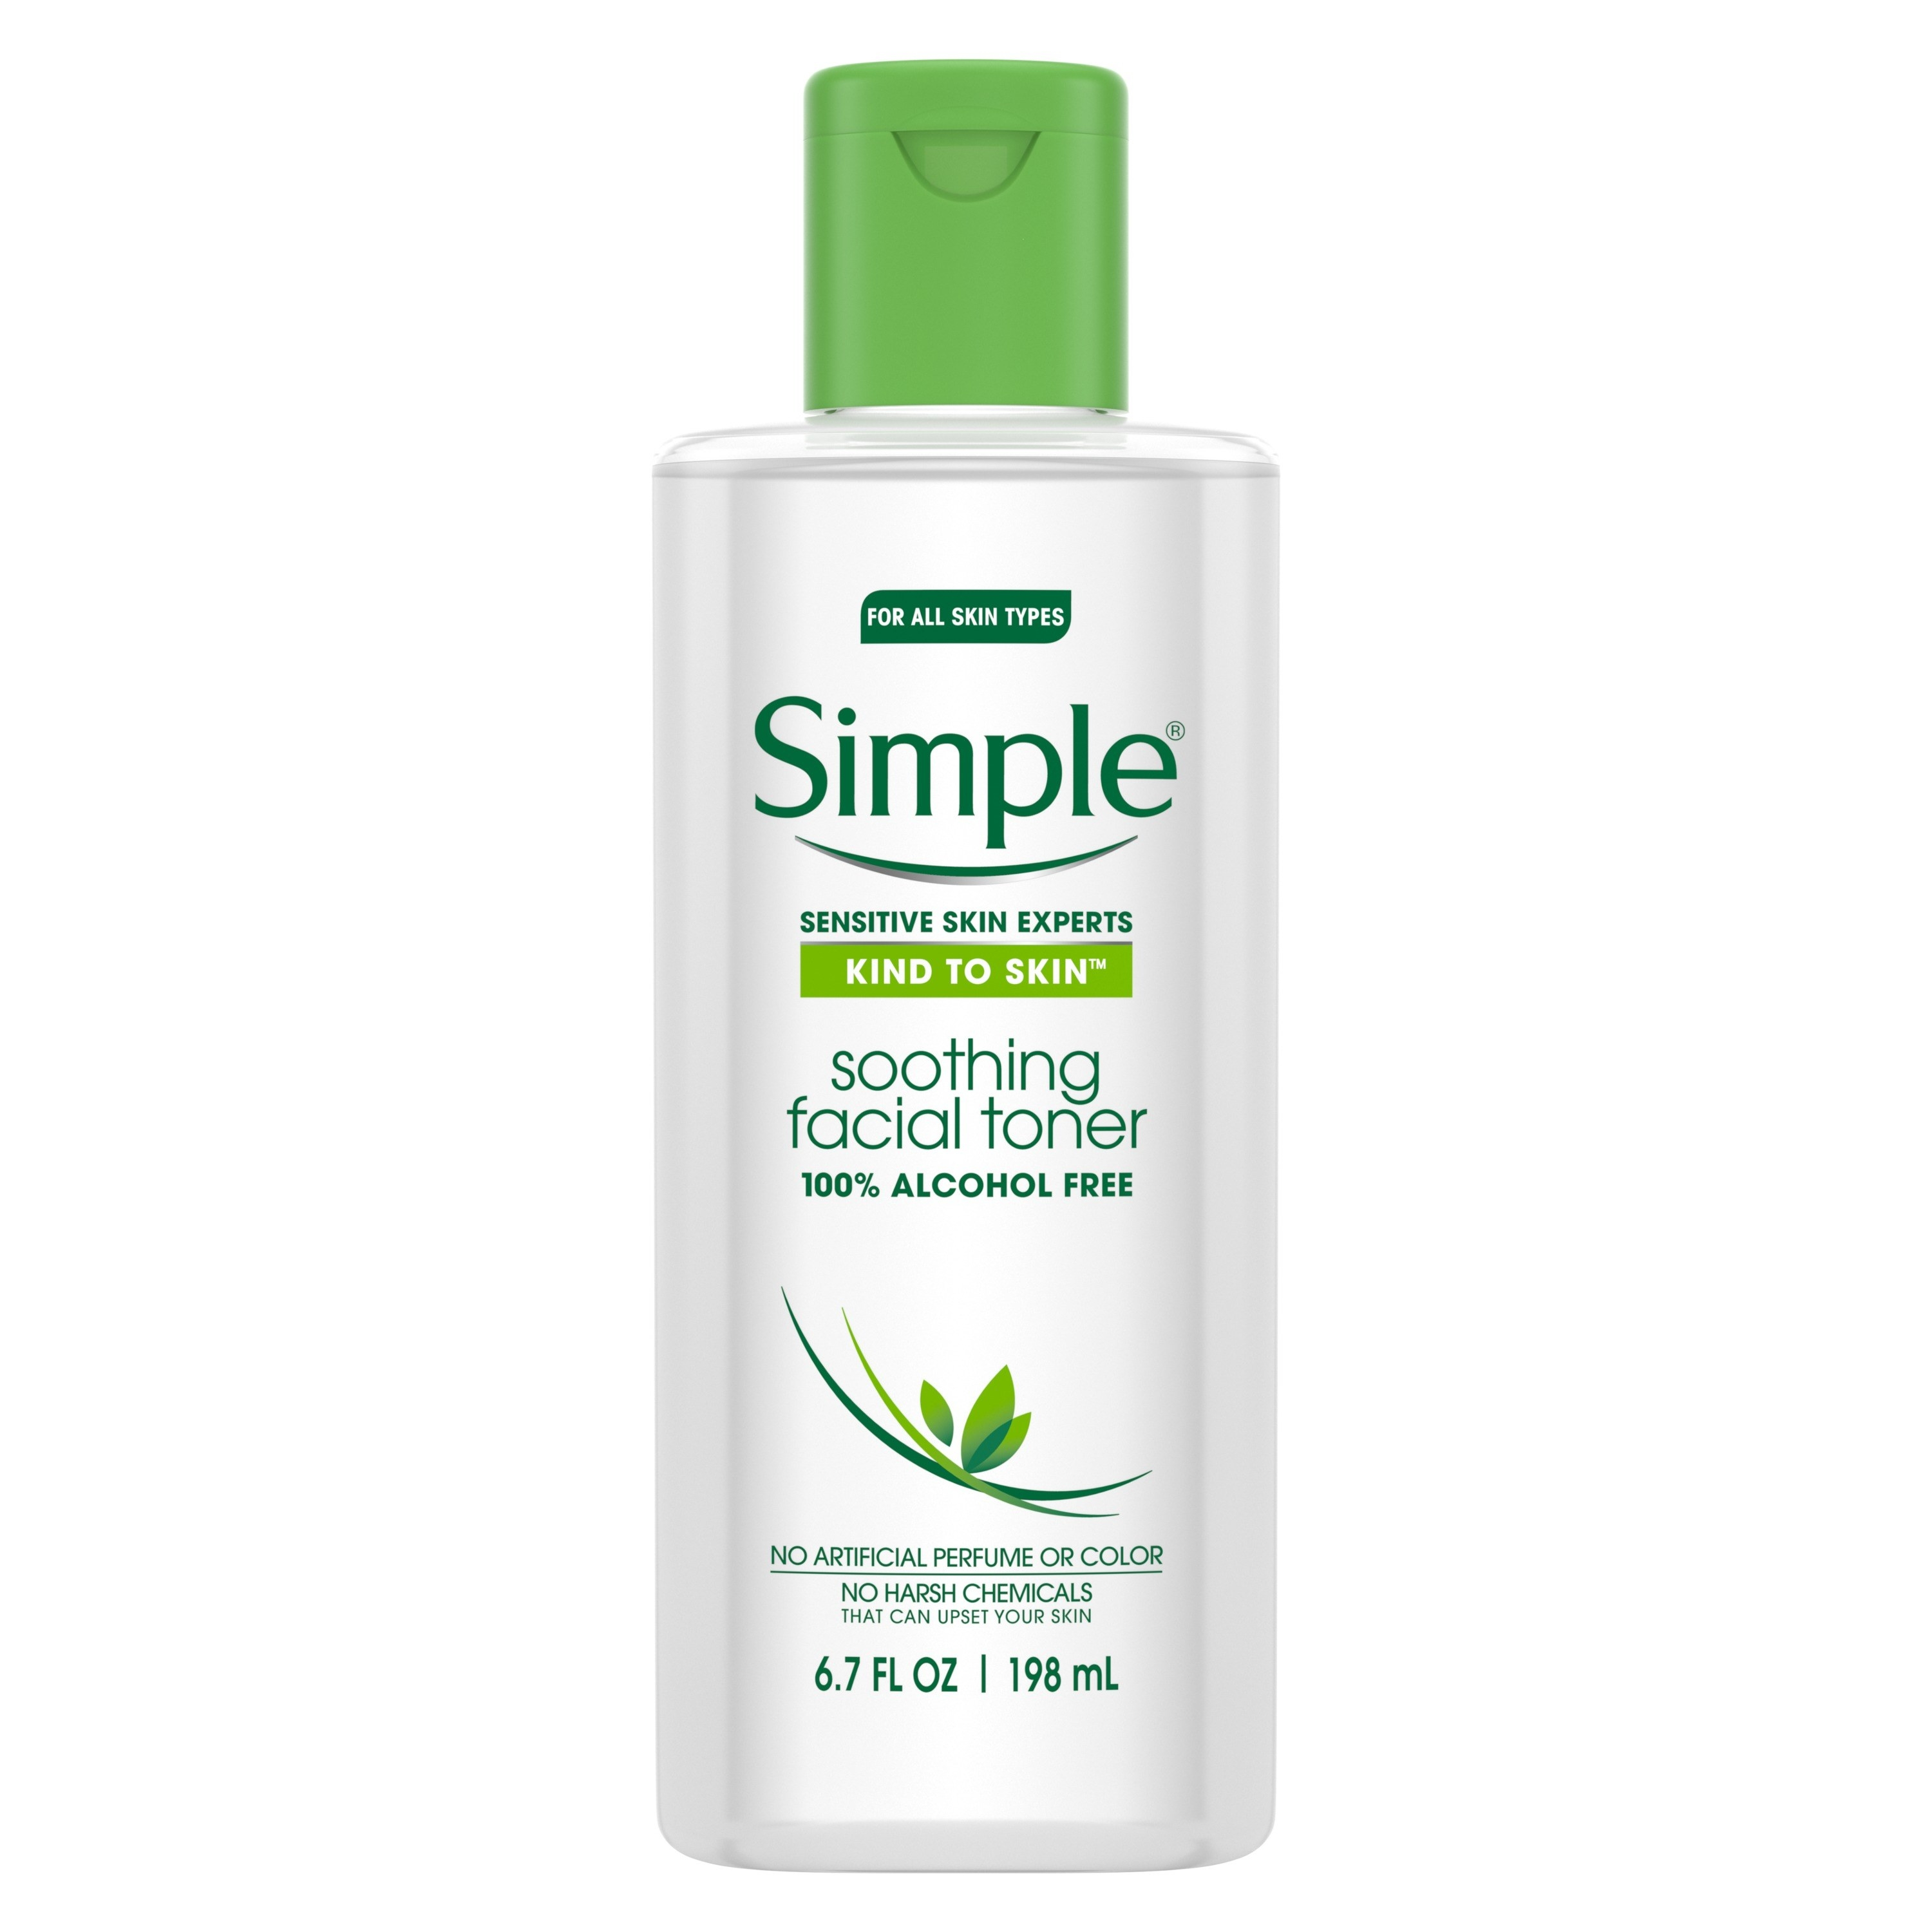 Bottle of Simple Soothing Facial Toner